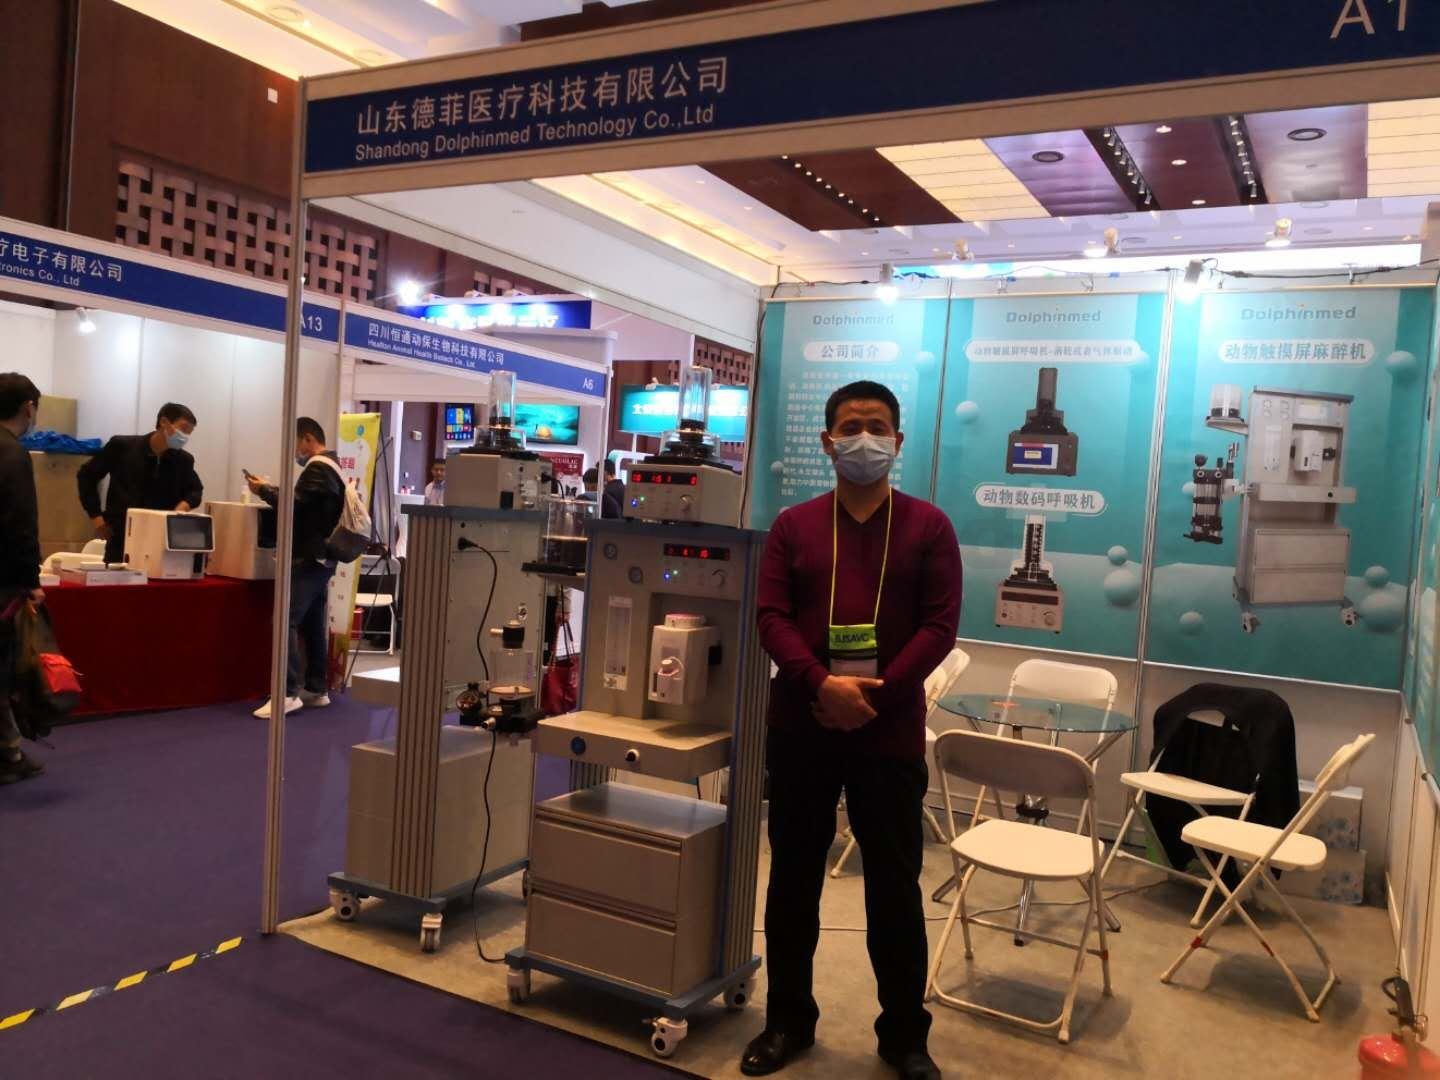 DOLPHINMED Attend the 16th Beijing BJSAVA Annual Congress Show the Advanced Anesthesia Machine Technology